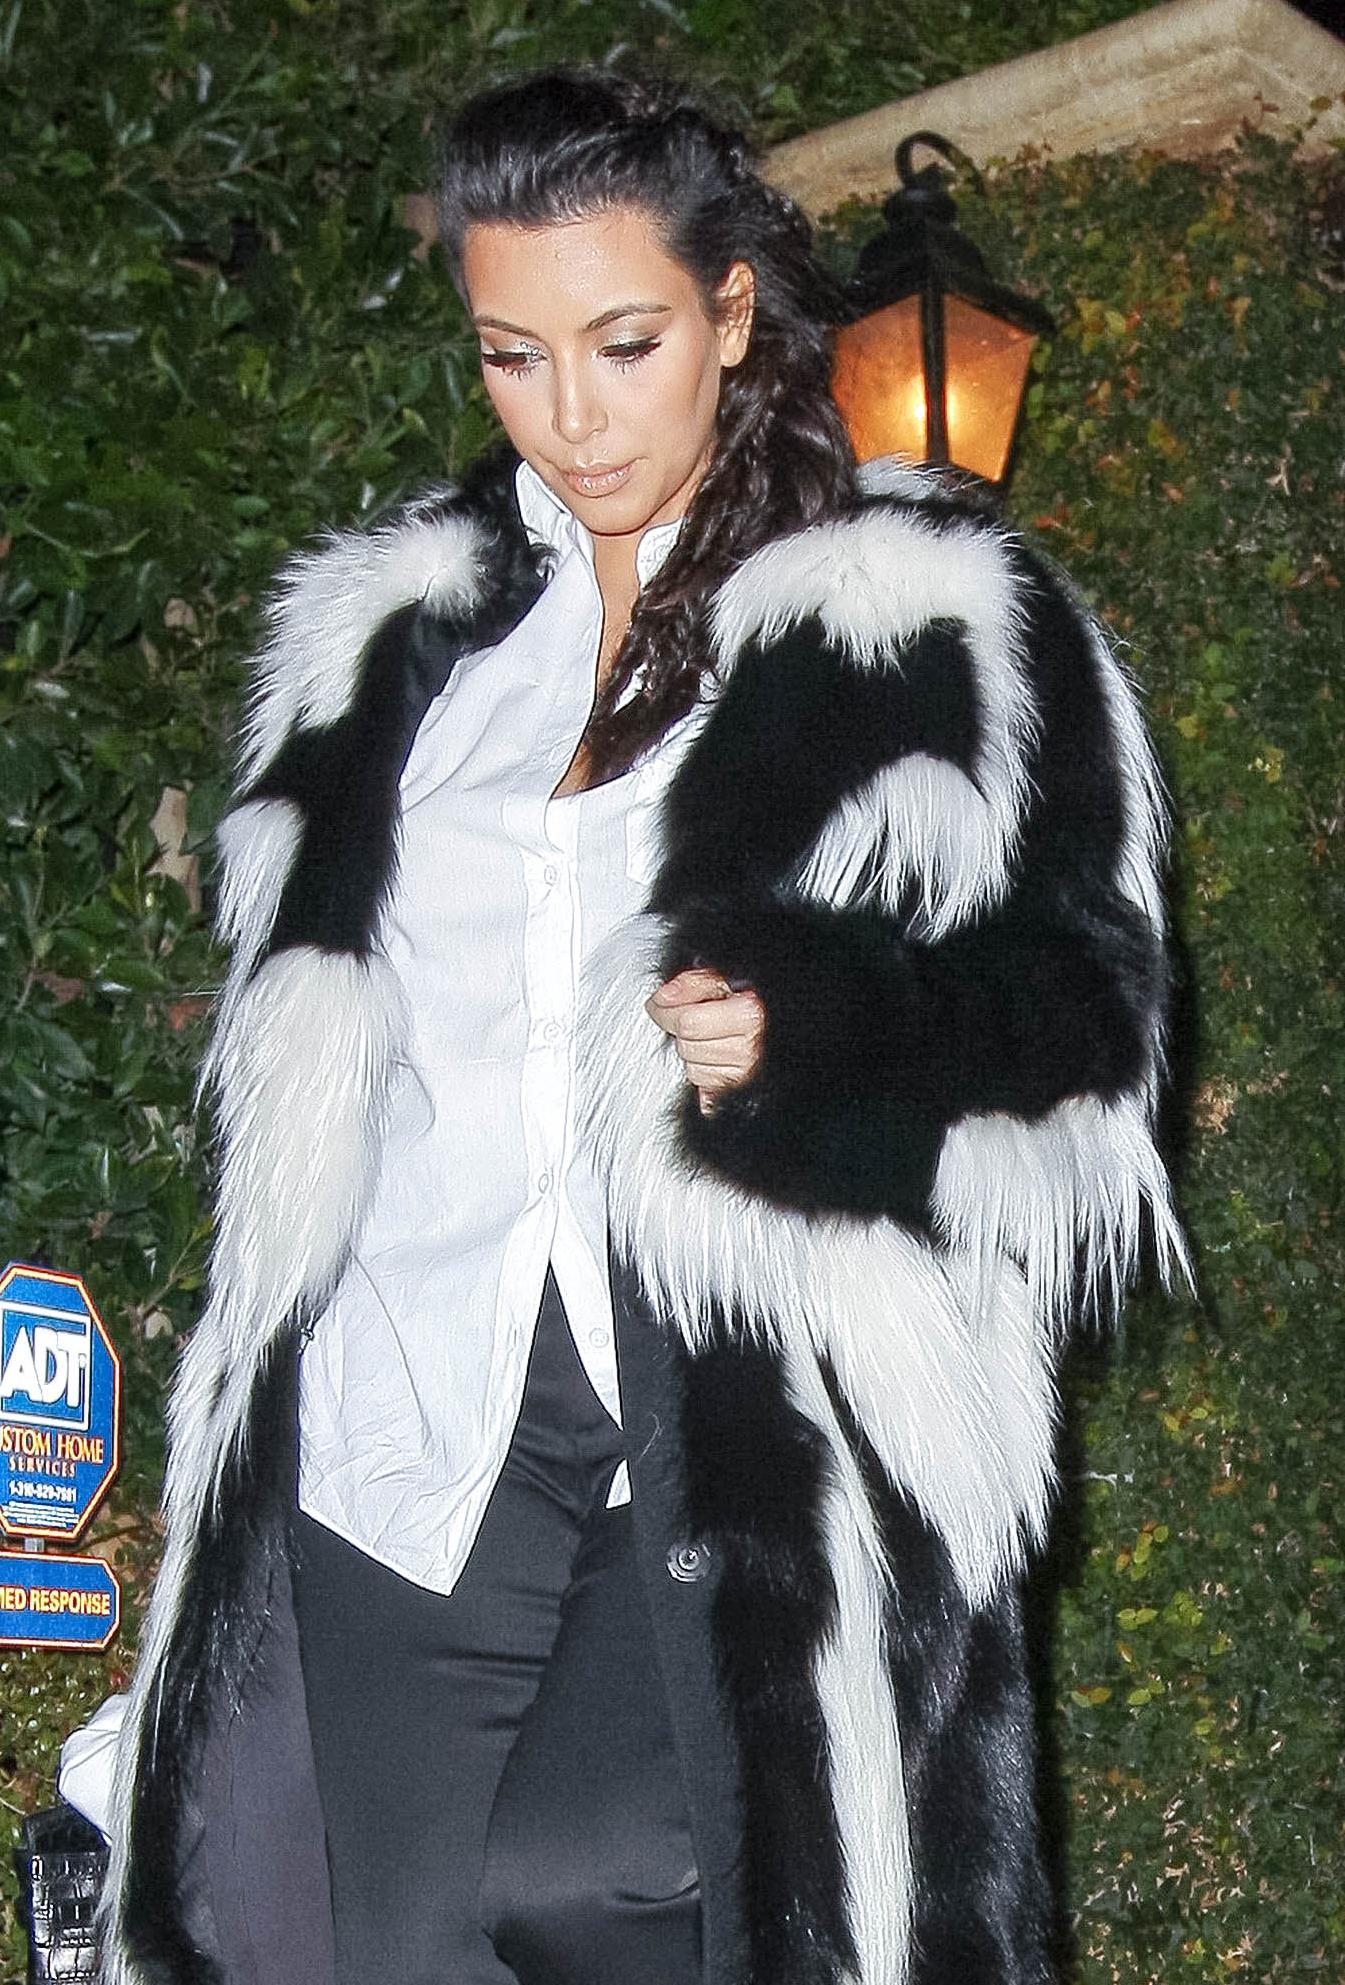 Exclusive - Expectant Mom Kim Kardashian Debuts Baby Bump in Skunk Fur Coat With Proud Dad-To-Be Kanye West